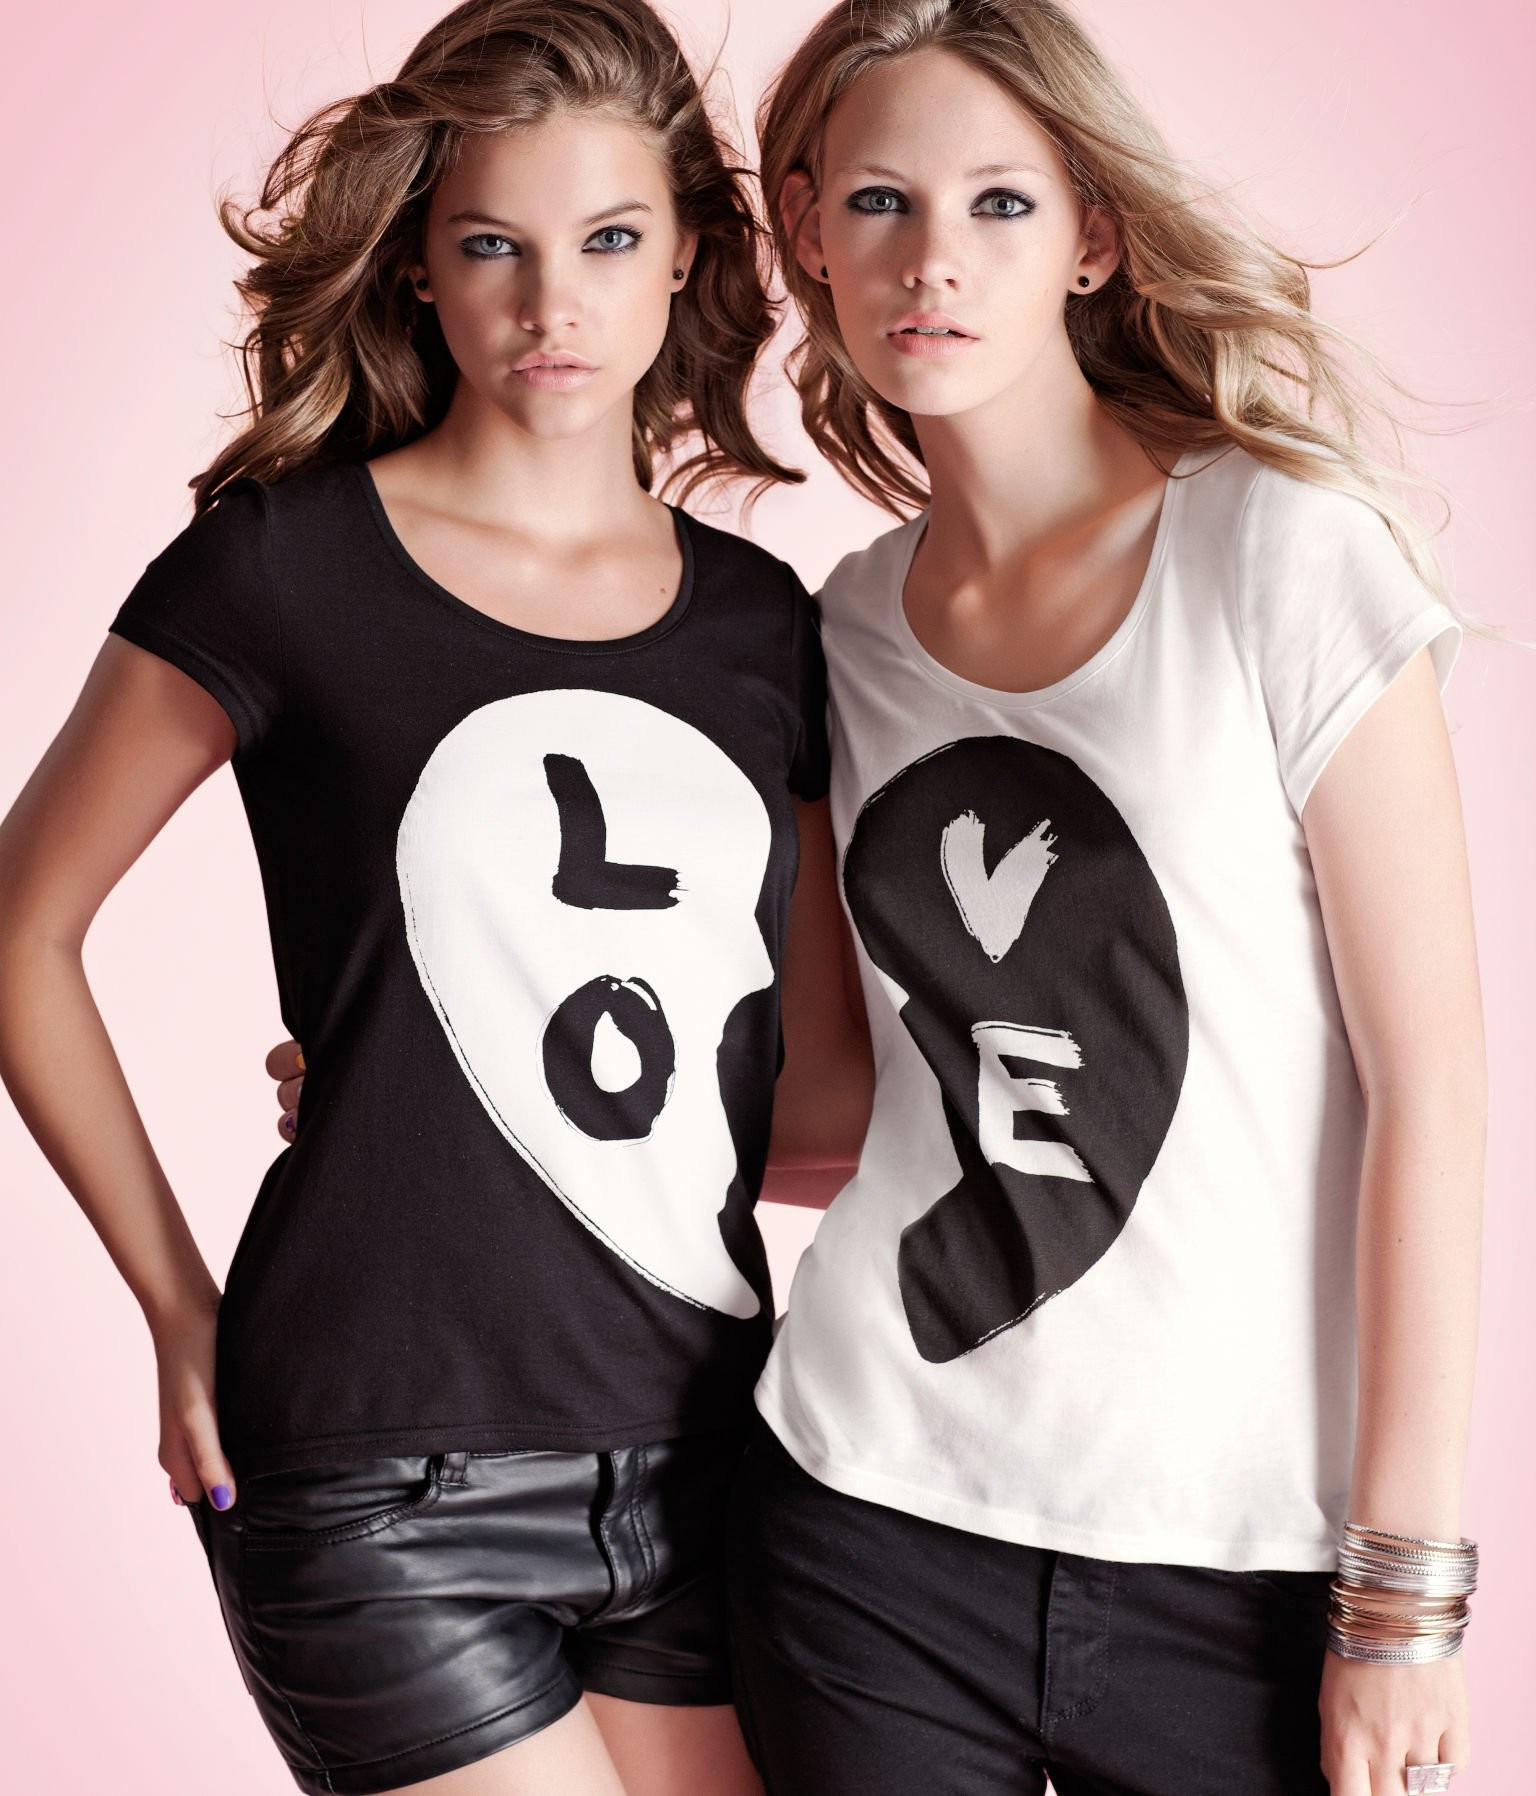 People 1536x1796 women model blonde long hair looking at viewer love Barbara Palvin T-shirt brunette pink background shorts two women leather pants  eyeliner